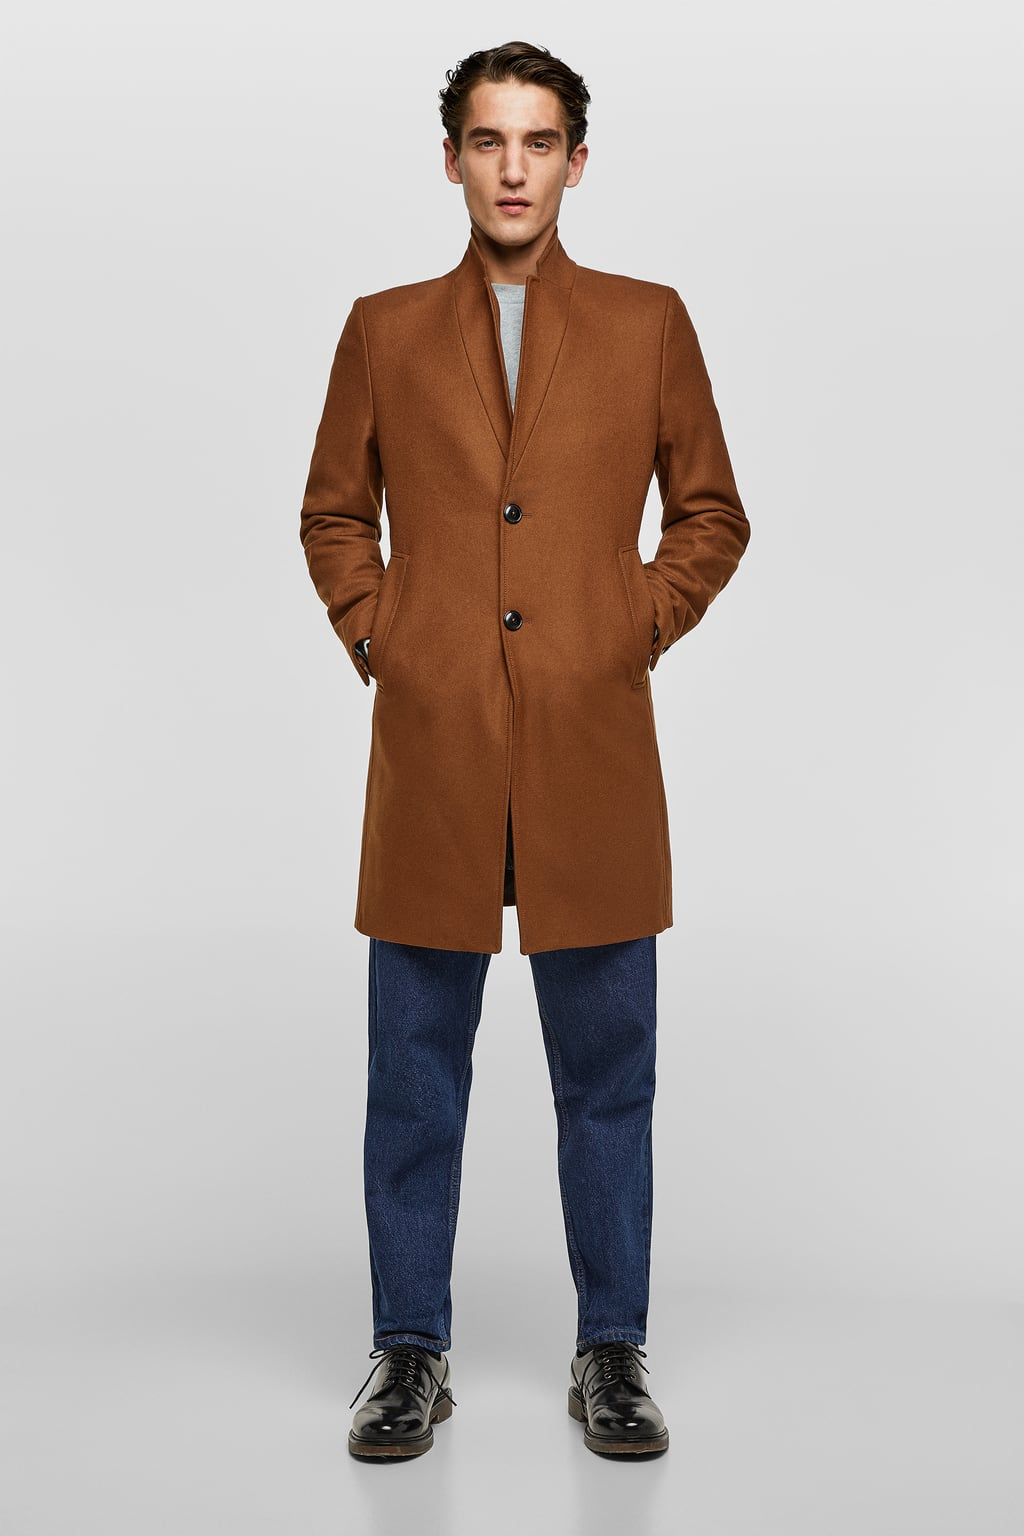 Coat with lapels all time man zara indonesia image 1 of coat with lapels from zara stopboris Images